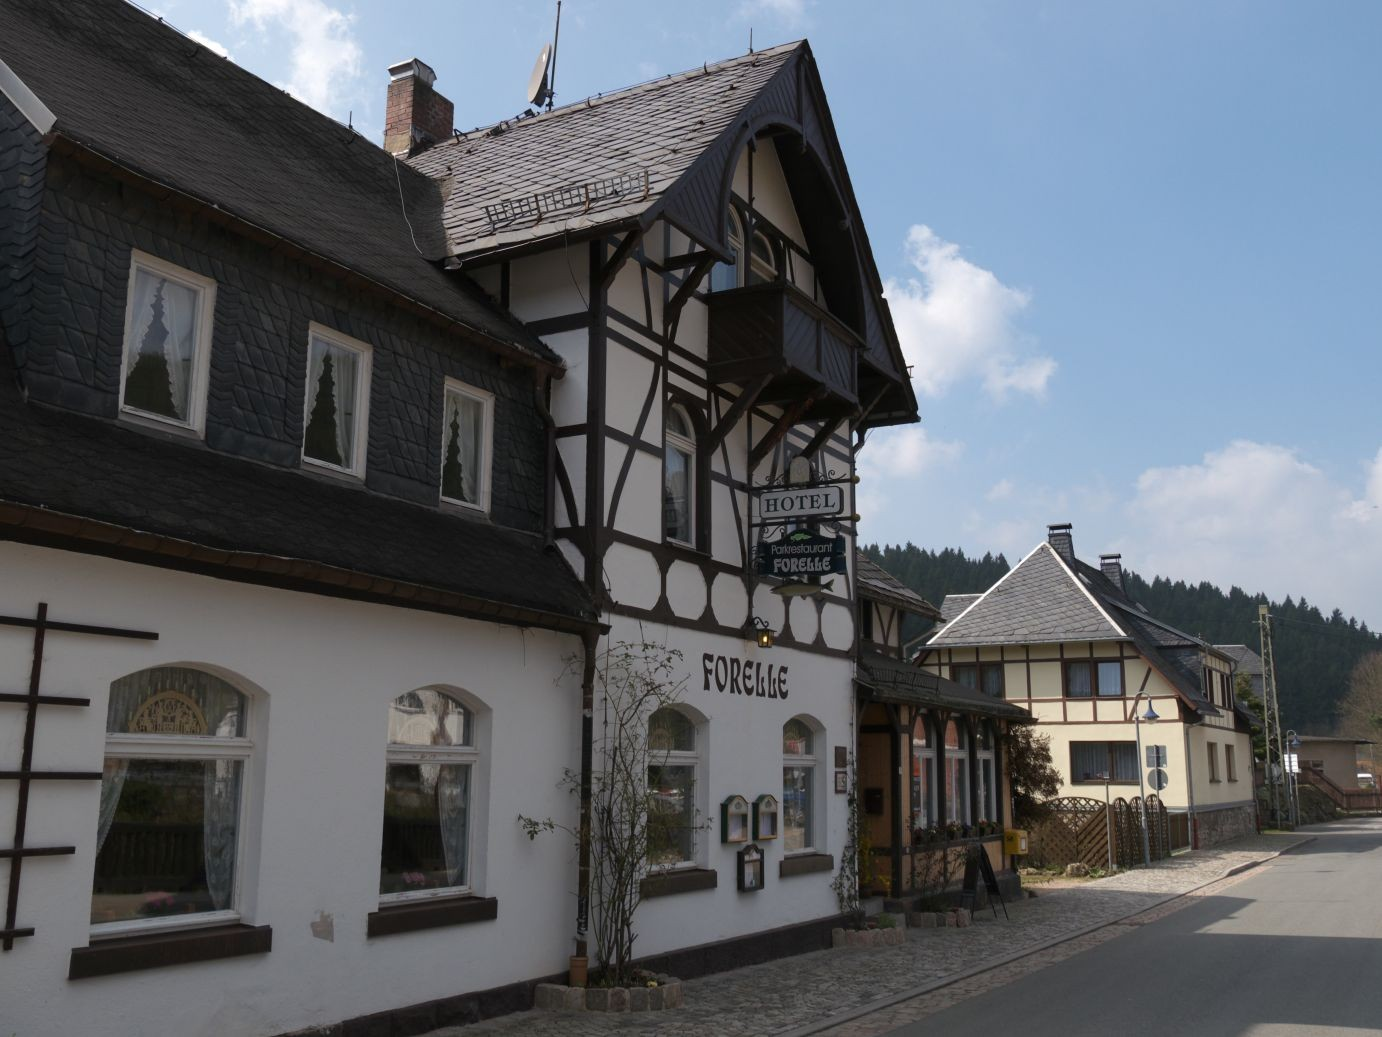 das traditionsreiche Restaurant Forelle in Blauenthal